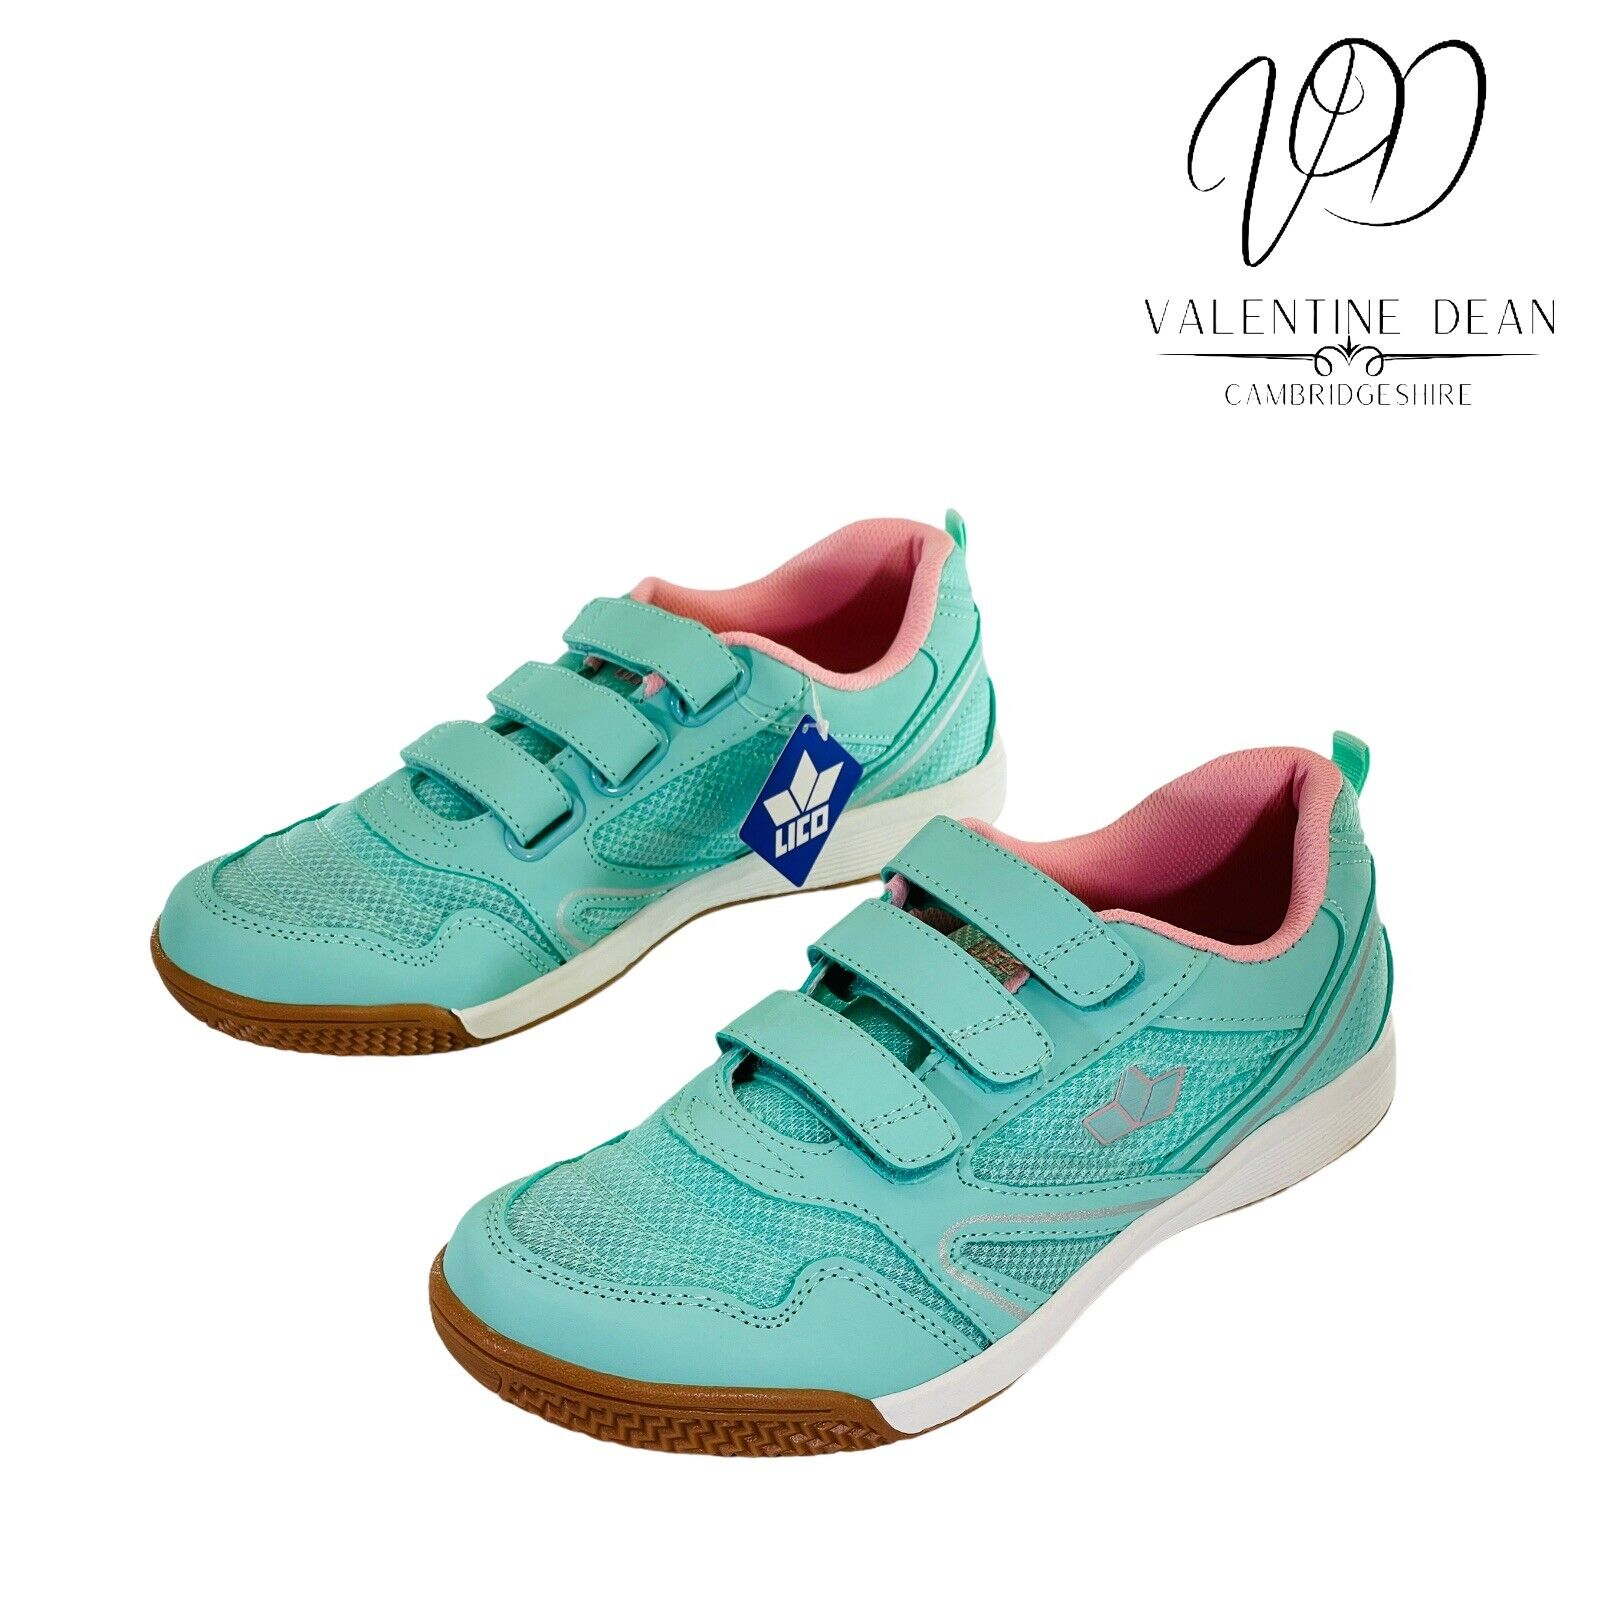 Lico Boulder V Women's Trainers Unisex Turquoise & Pink Mesh Trainers Size 7 Uk